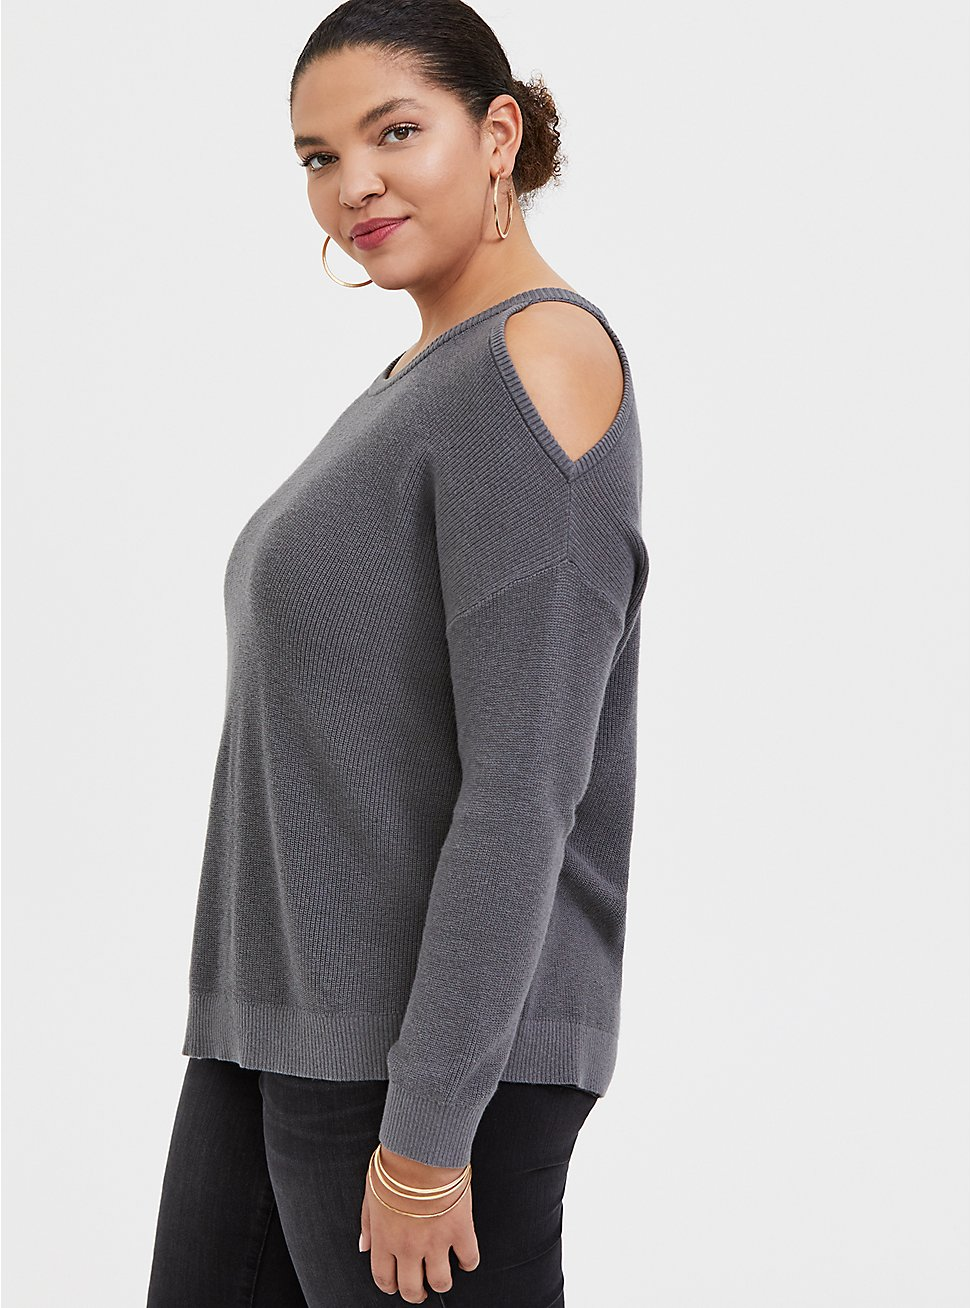 Grey Rib Cold Shoulder Pullover Top, SMOKED PEARL, hi-res